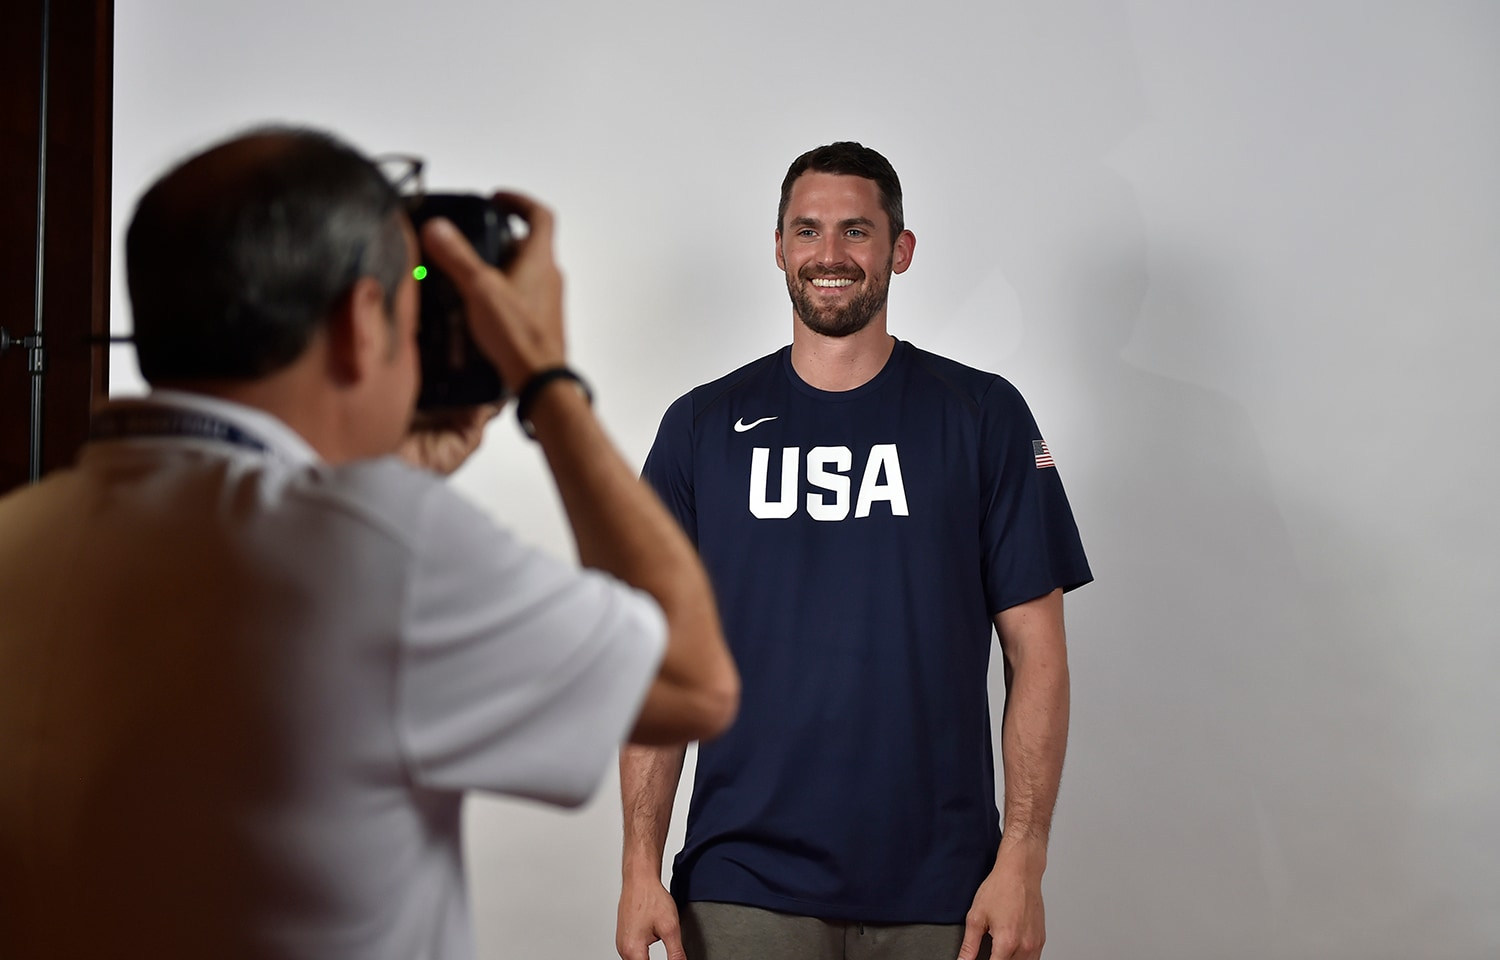 LAS VEGAS, NV - JULY 25: A behind the scenes photo of Kevin Love taking a head shot at USAB Minicamp in Las Vegas, Nevada at the Wynn Las Vegas on July 25, 2018. (David Becker/NBAE via Getty Images)